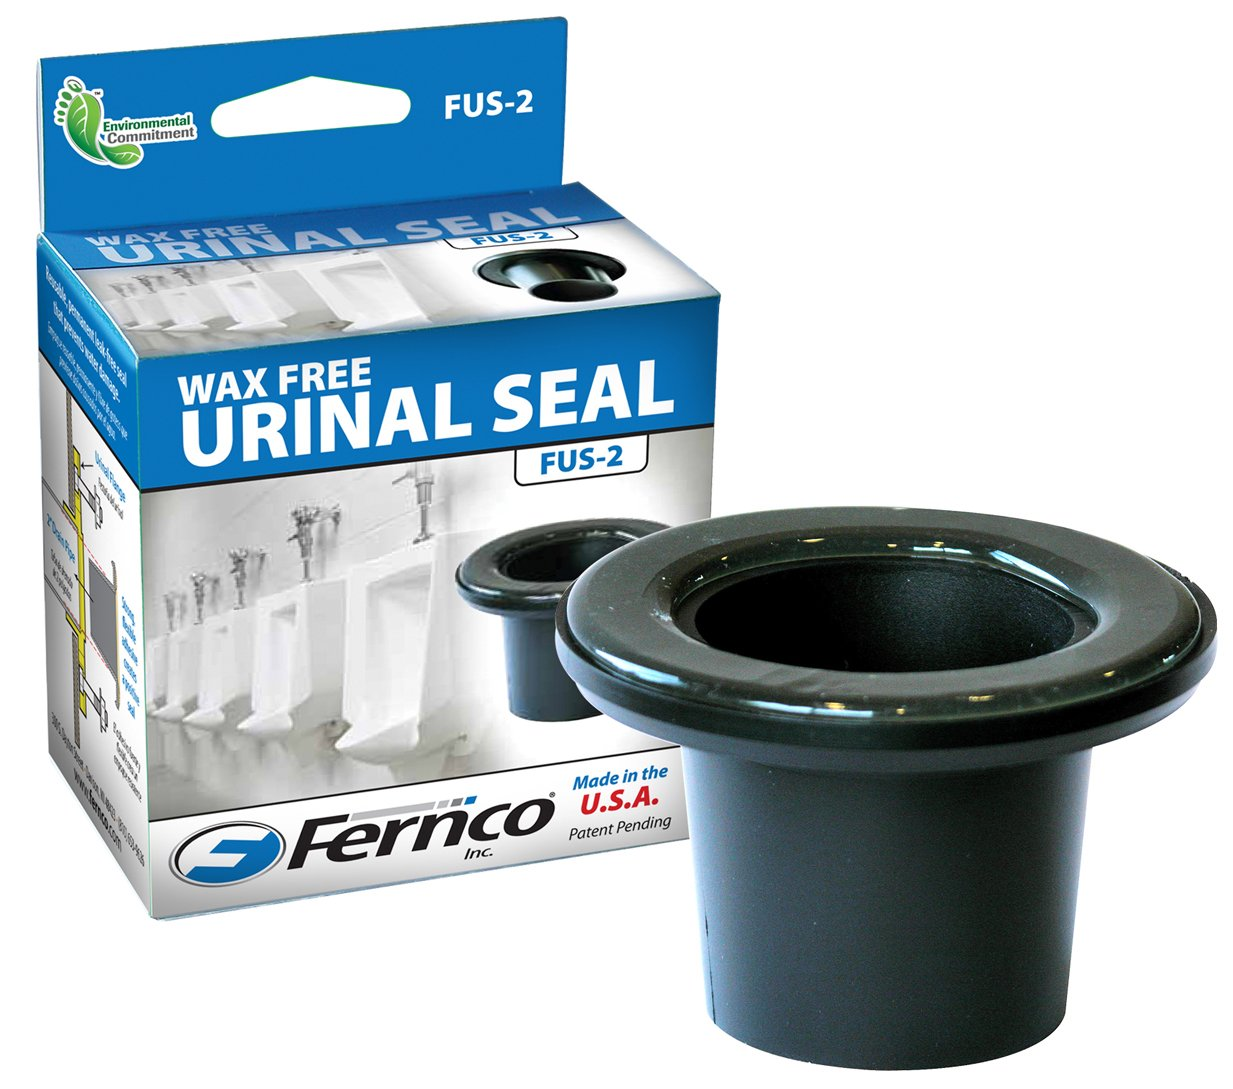 Fernco FUS-2 Wax Free Urinal Seal, Pack of 1